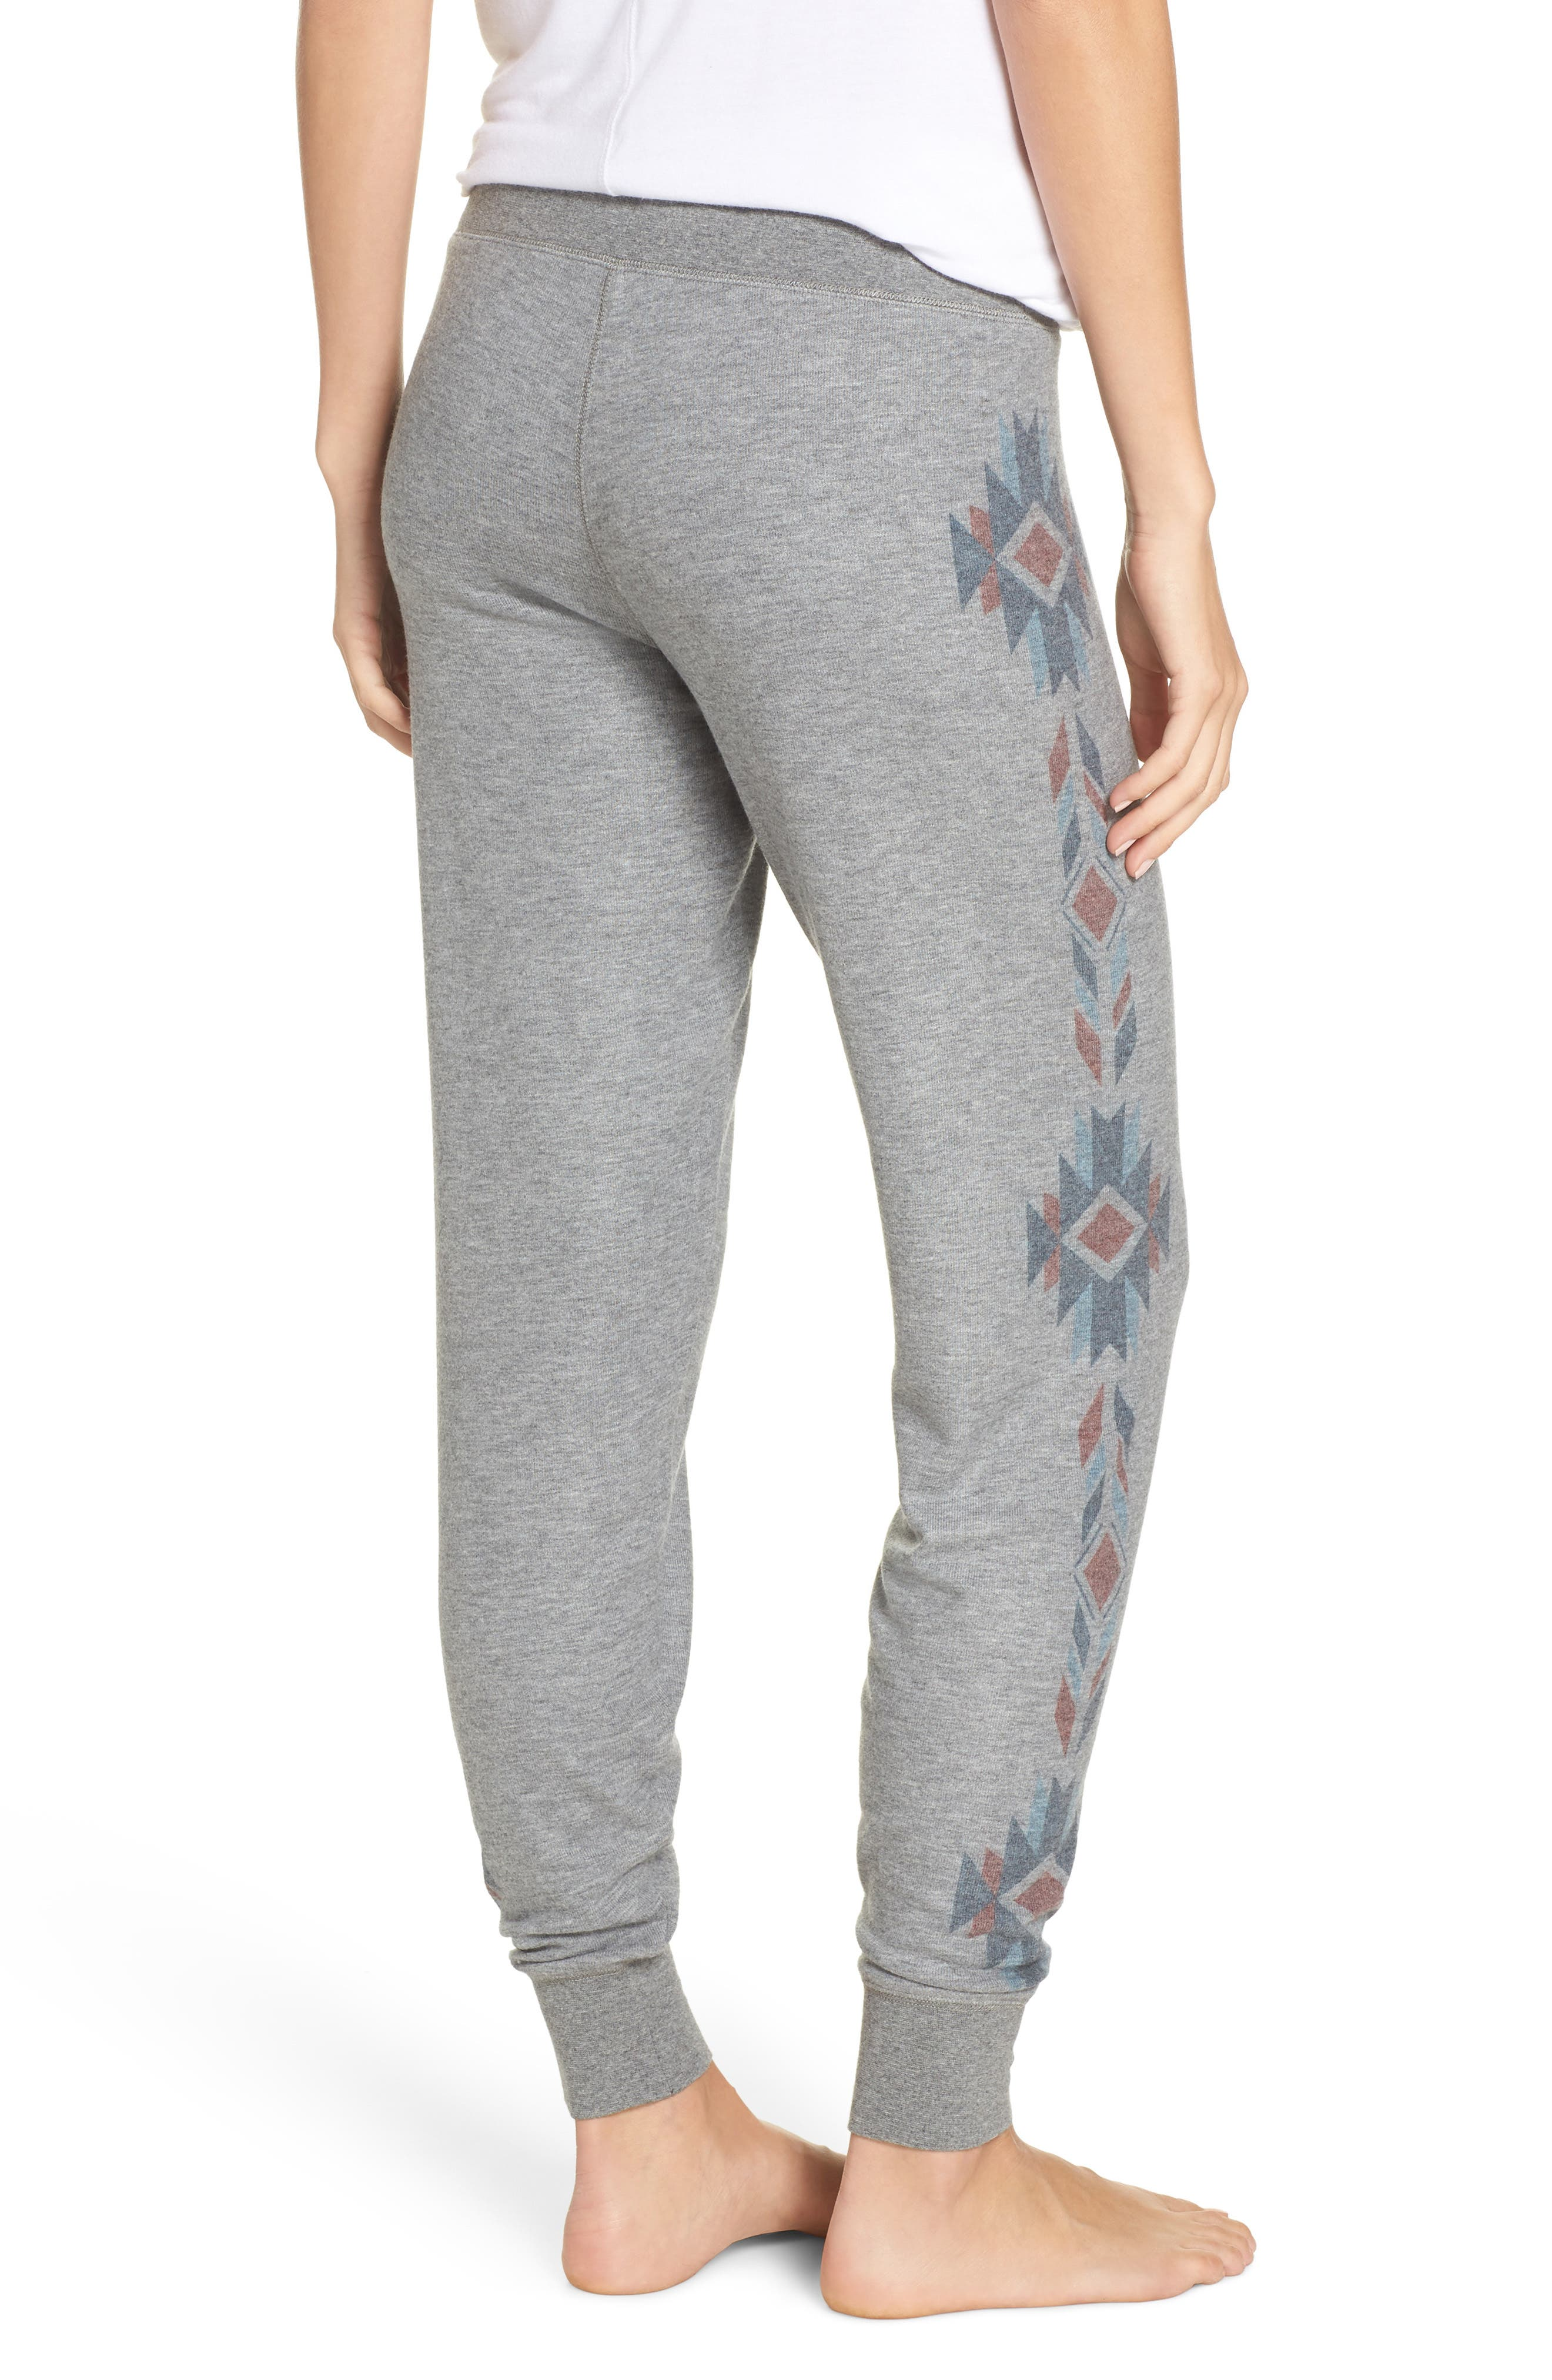 Winter Escape Jogger Pants,                             Alternate thumbnail 2, color,                             H GREY